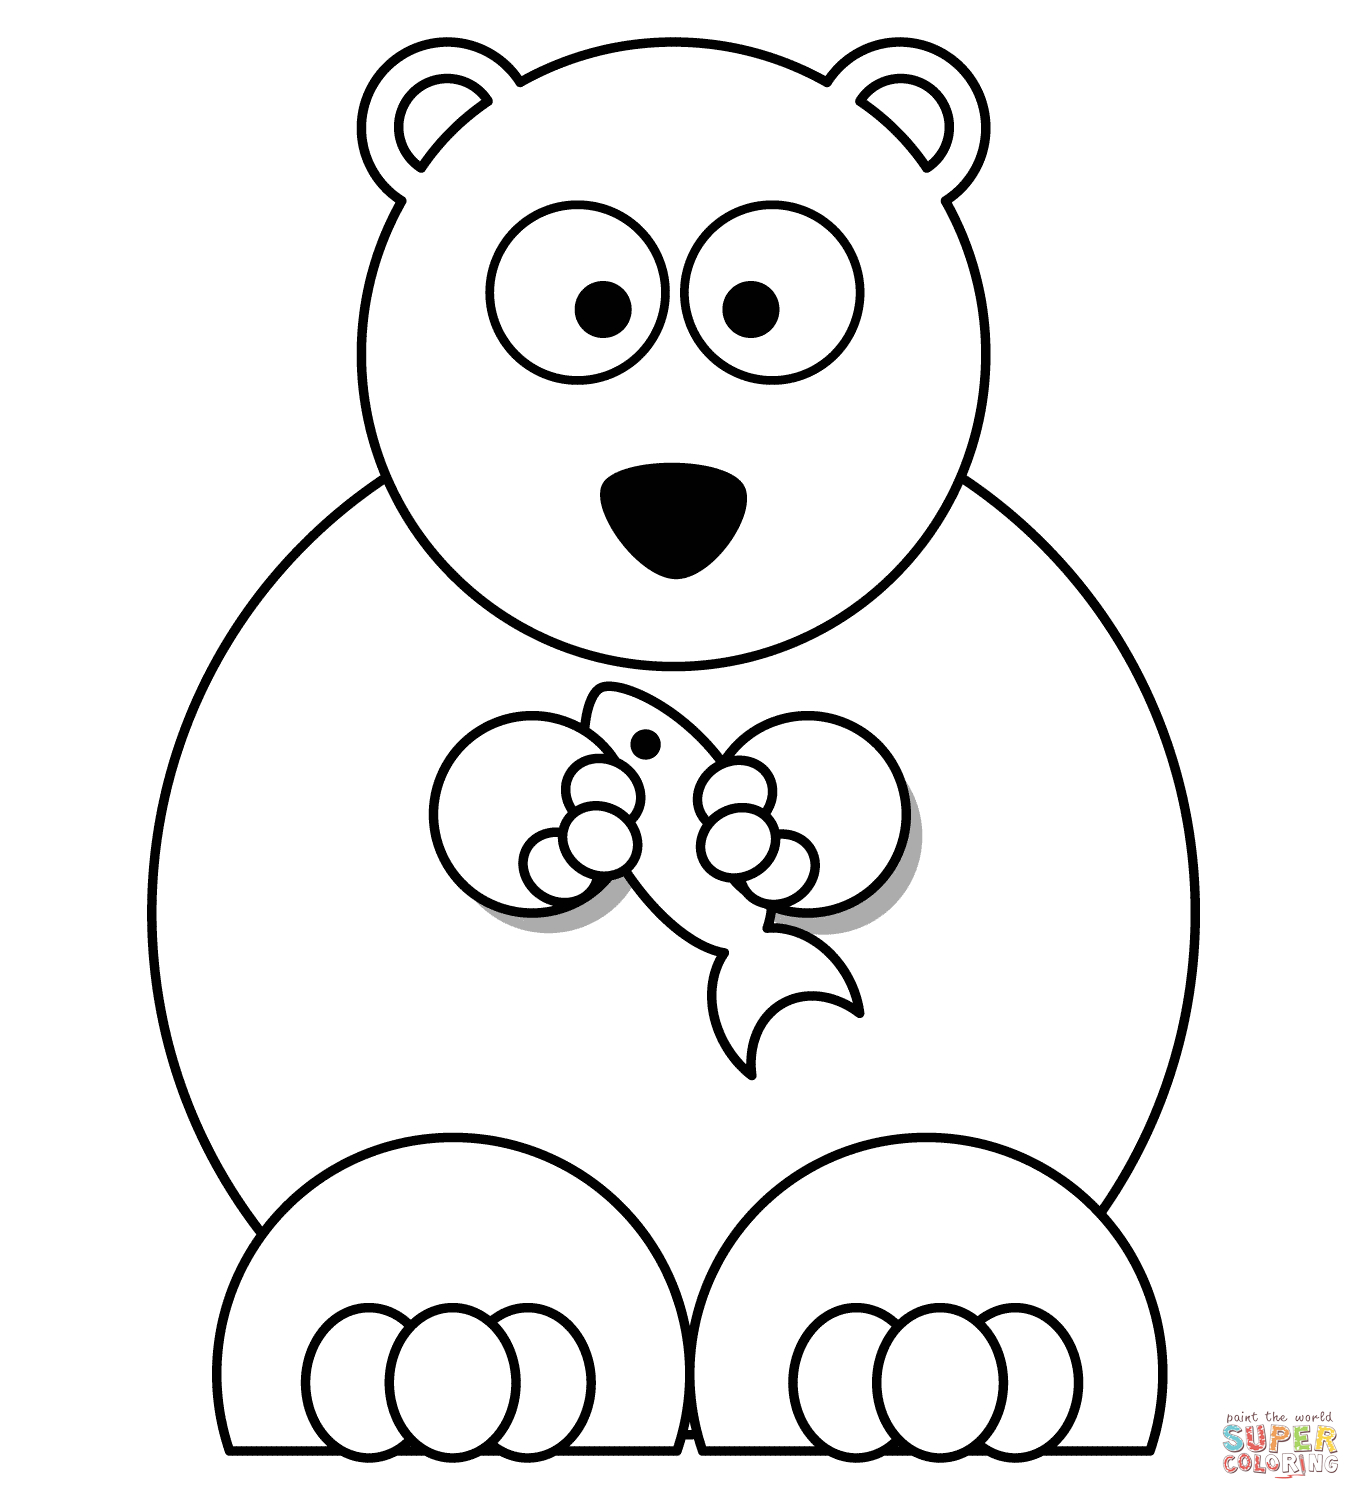 Cartoon Polar Bear With Fish Coloring Page | Free Printable Coloring - Polar Bear Printable Pictures Free